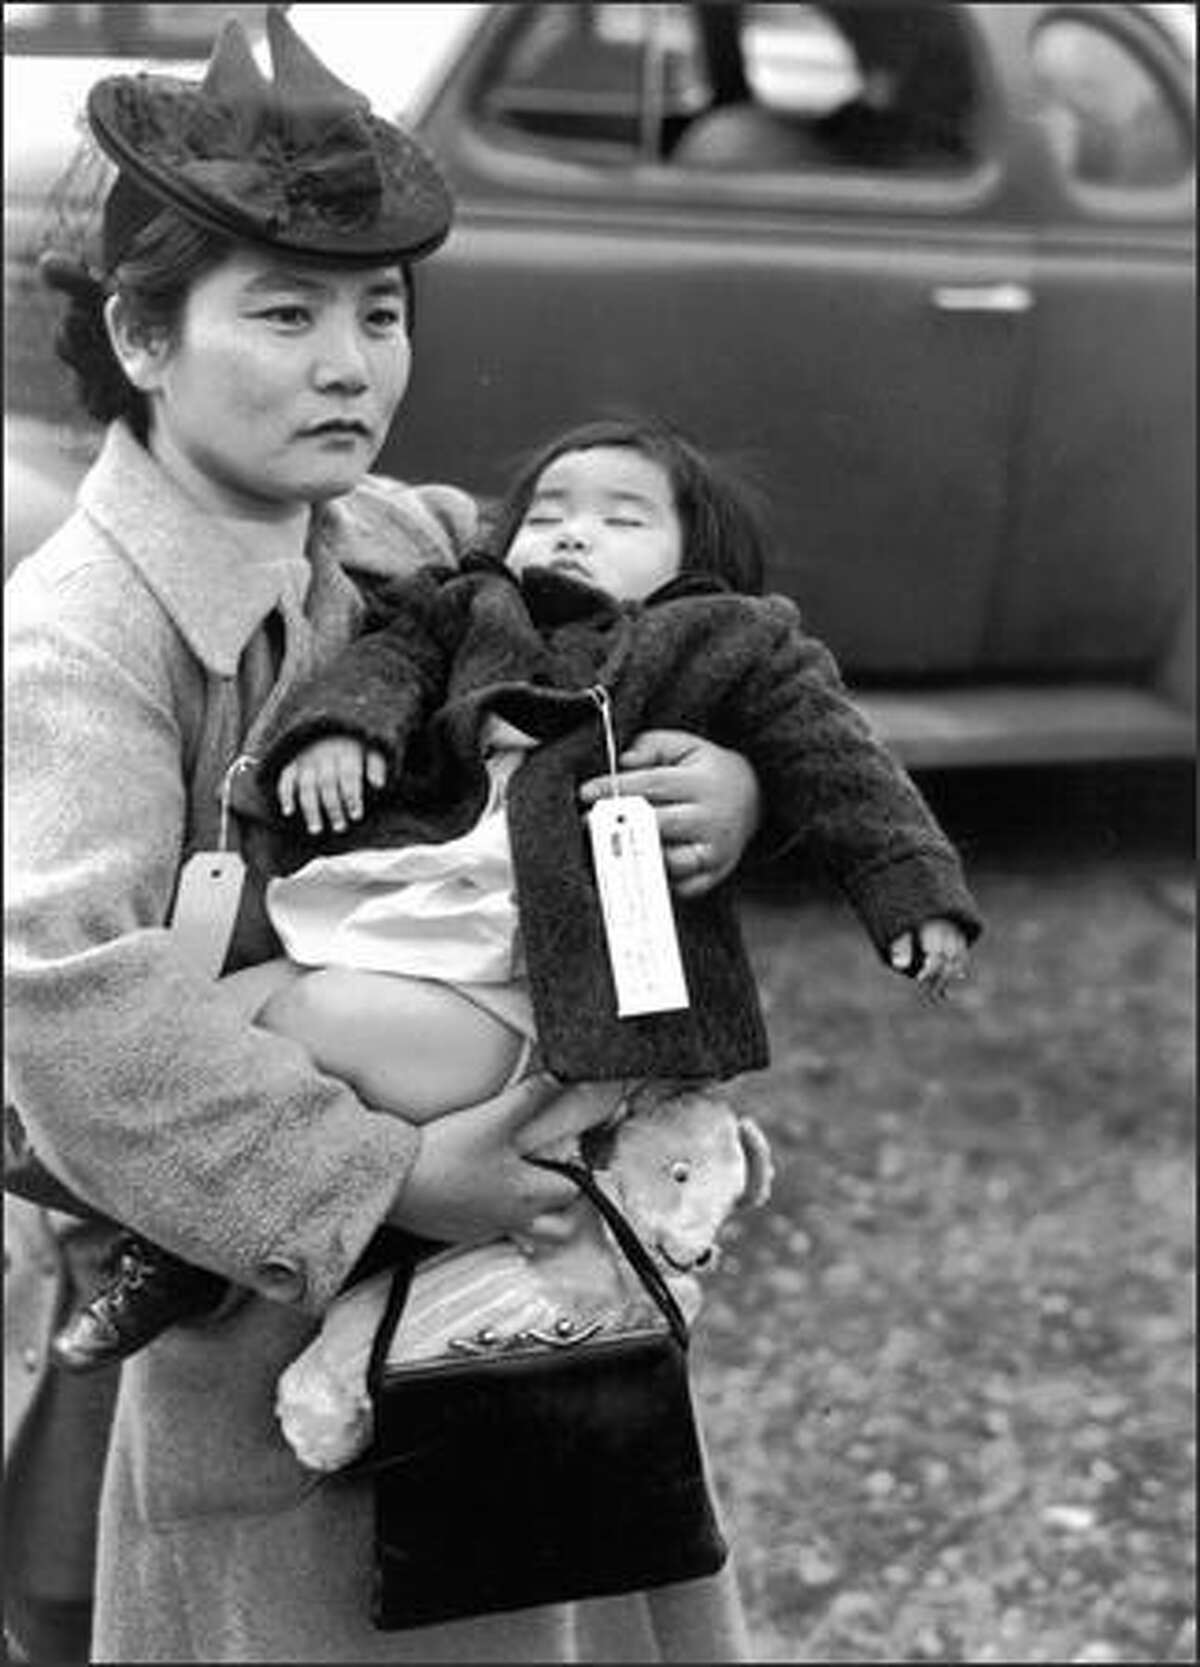 Her 11-month-old daughter asleep in her arms, Fumiko Hayashida waits to board a ferry from Bainbridge Island on March 30, 1942. The pair were being deported to an internment camp for Japanese-Americans in Manzanar, Calif.